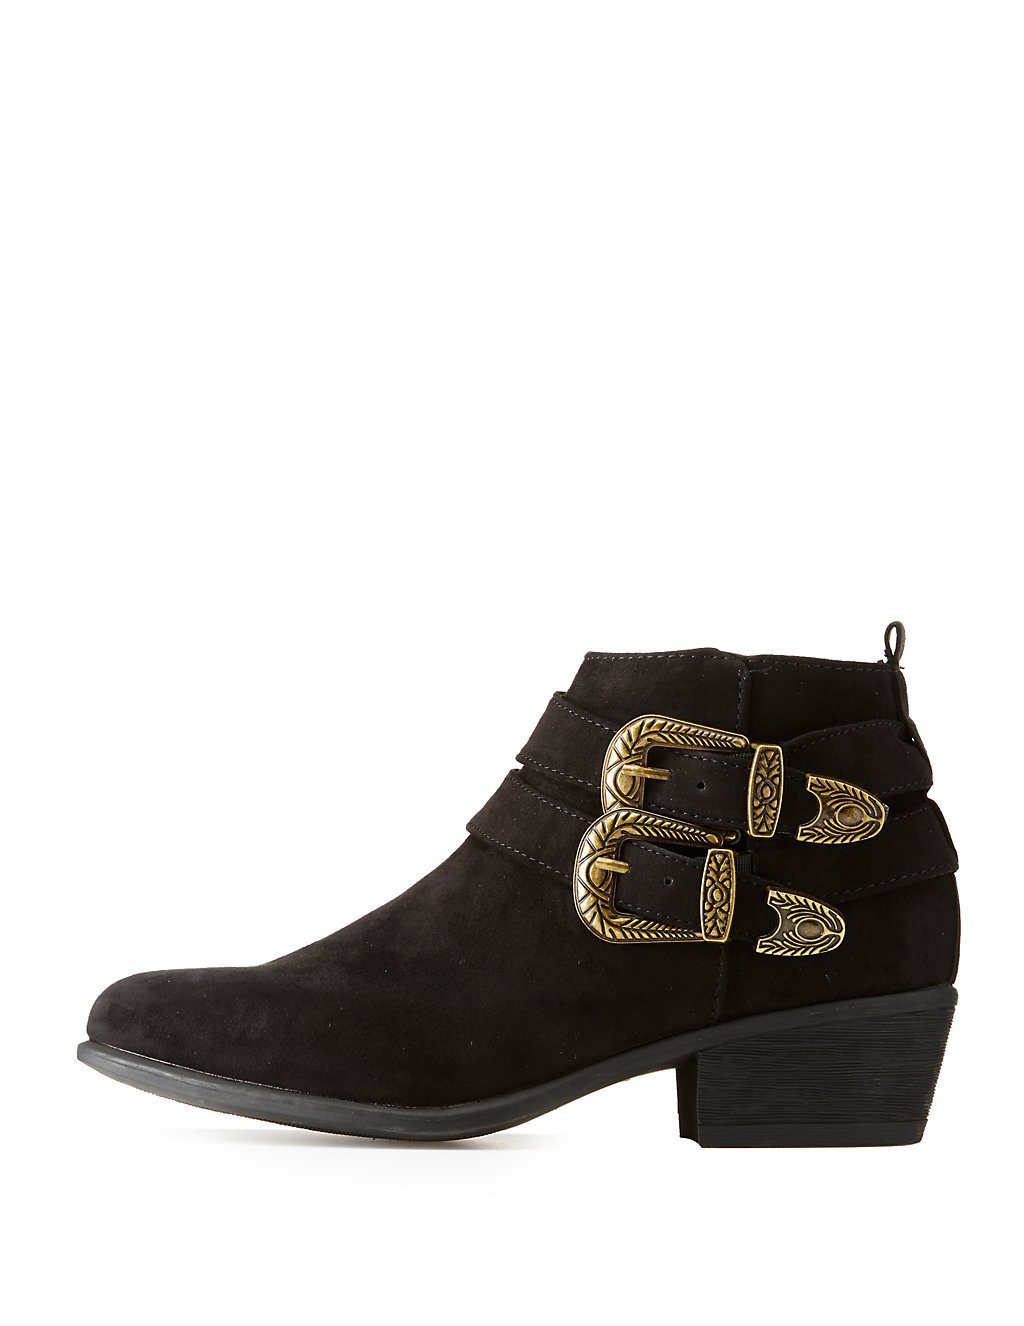 Charlotte Russe western ankle booties